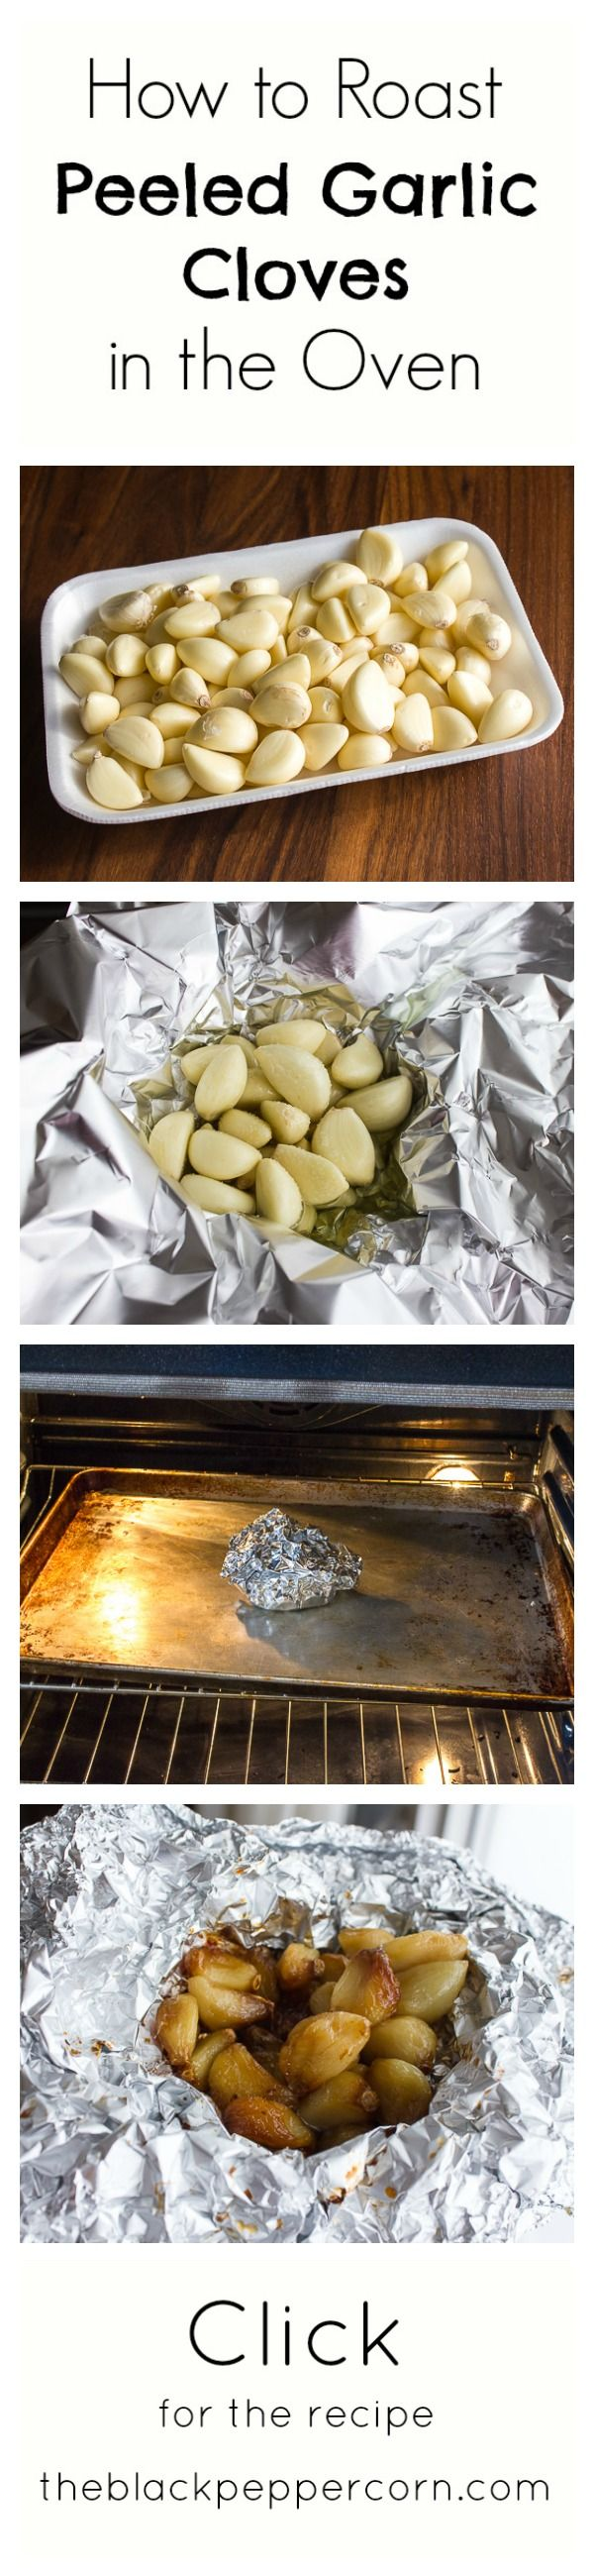 How to Roast Peeled Garlic Cloves in the Oven - easier then pushing them out of the bulb.